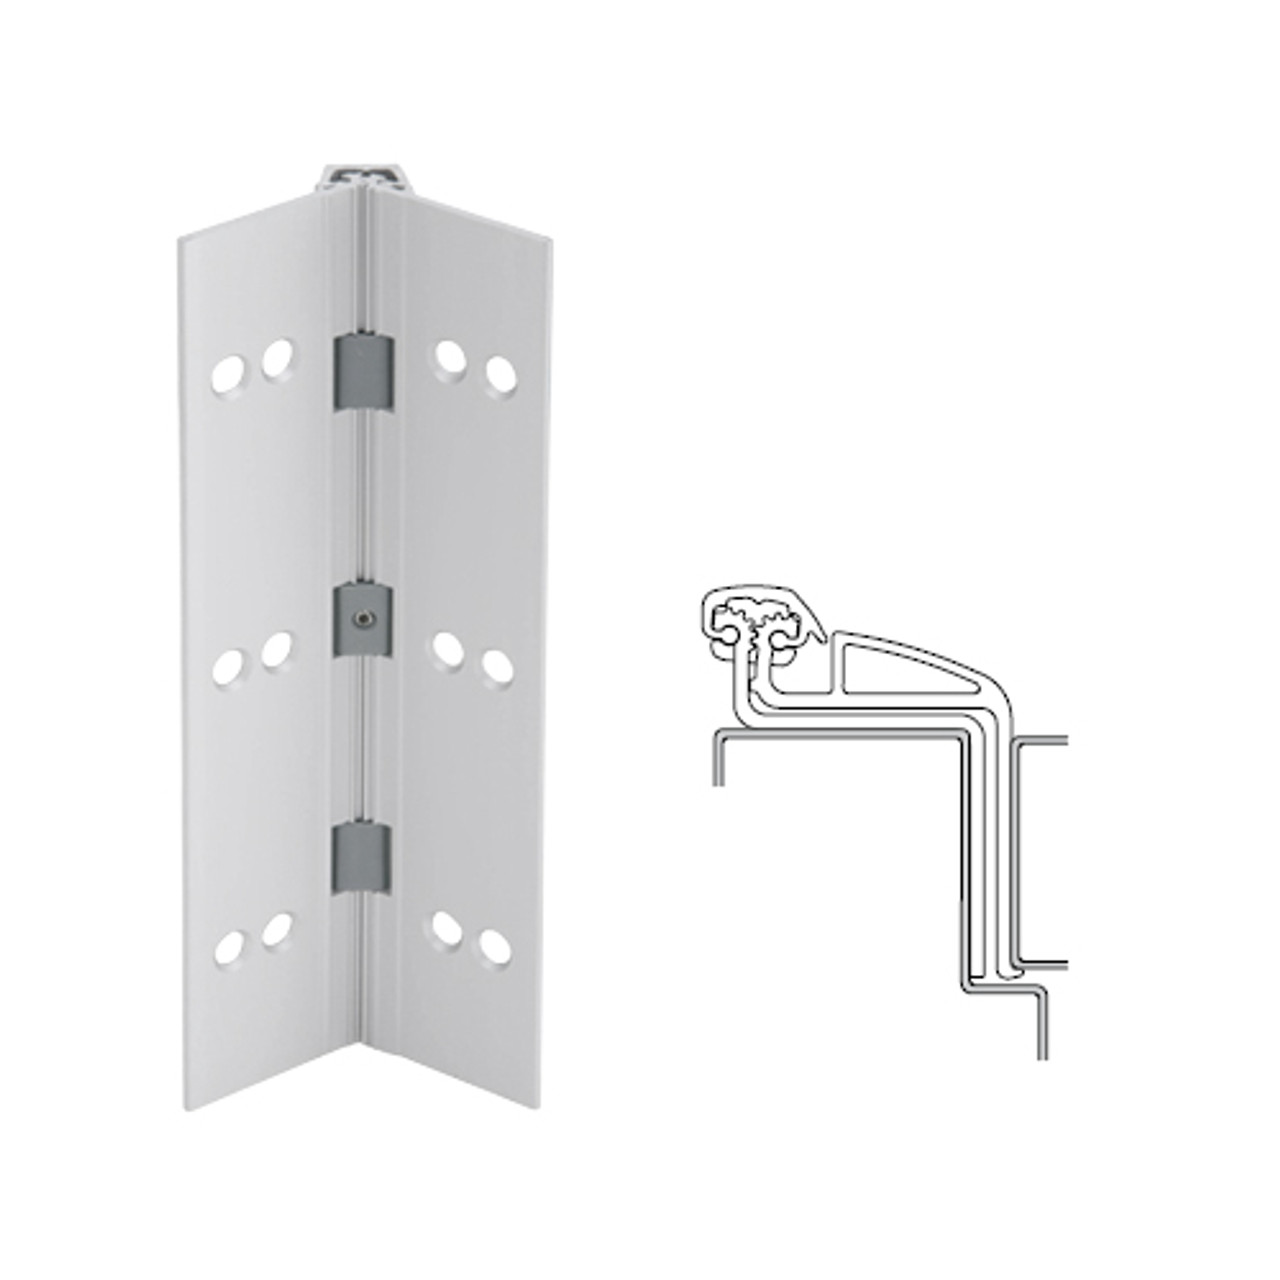 041XY-US28-85-WD IVES Full Mortise Continuous Geared Hinges with Wood Screws in Satin Aluminum